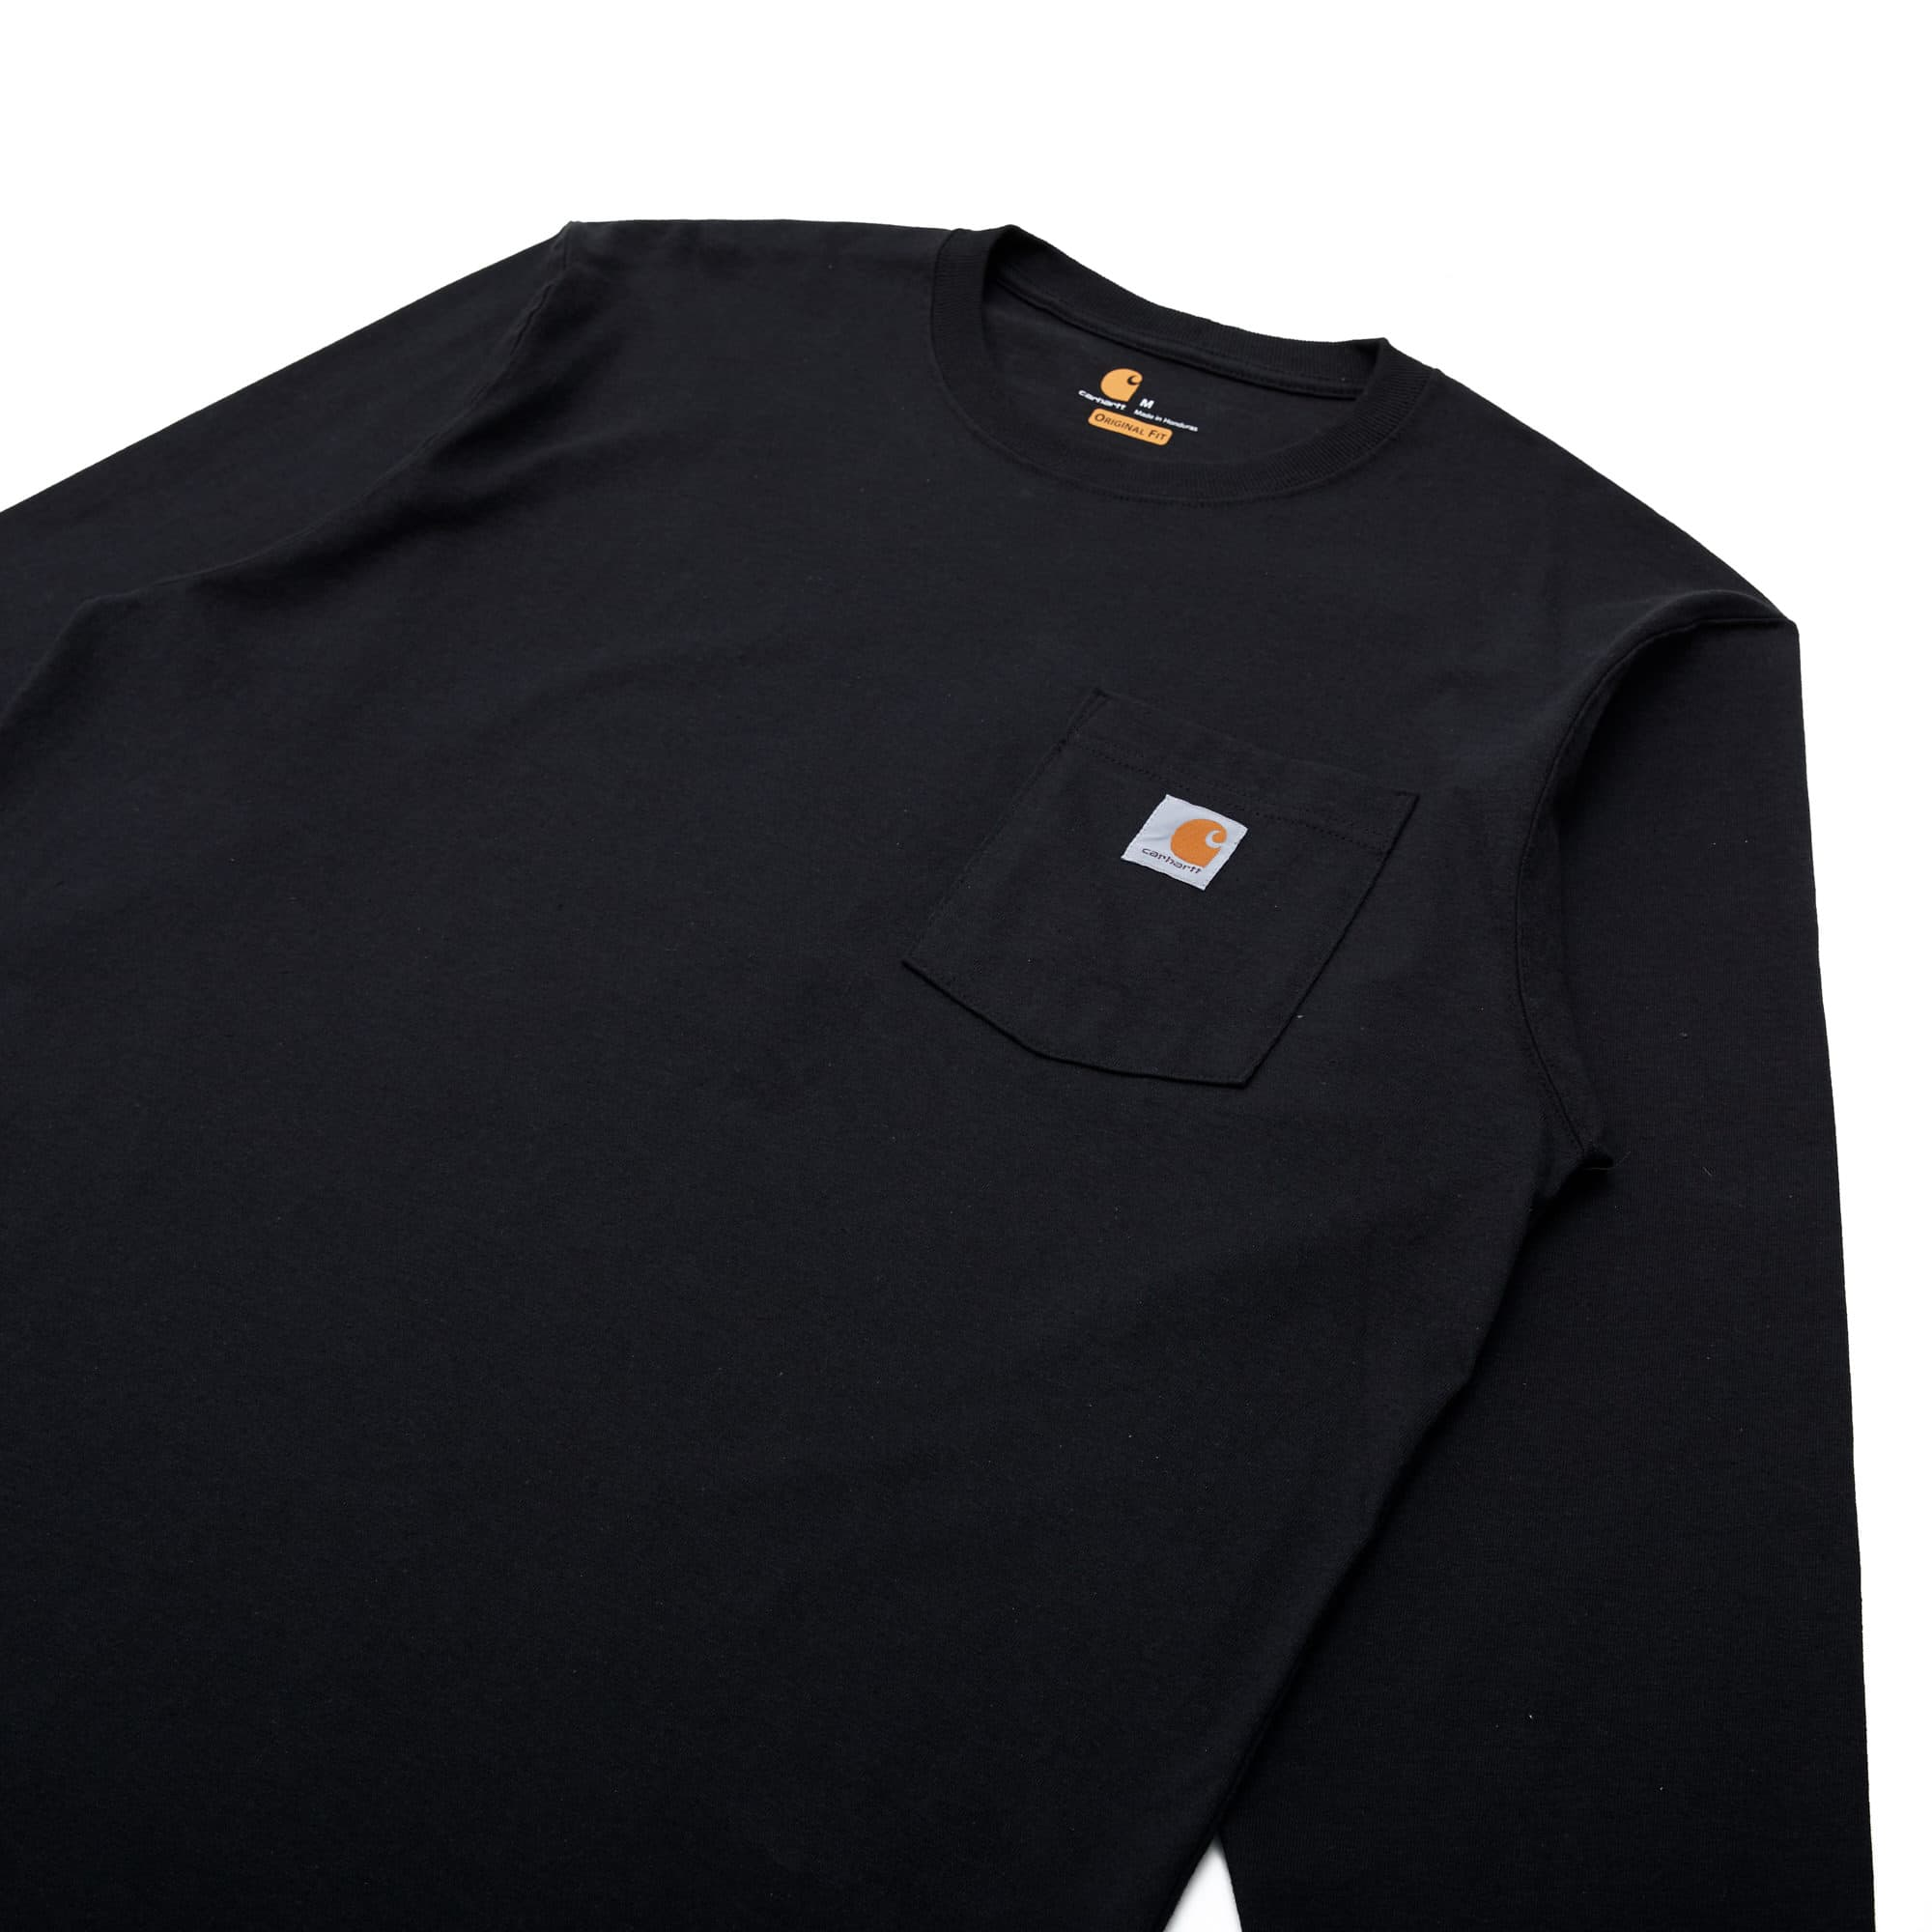 Andy Mineo x Carhartt 'United Miners' Long Sleeve Tee